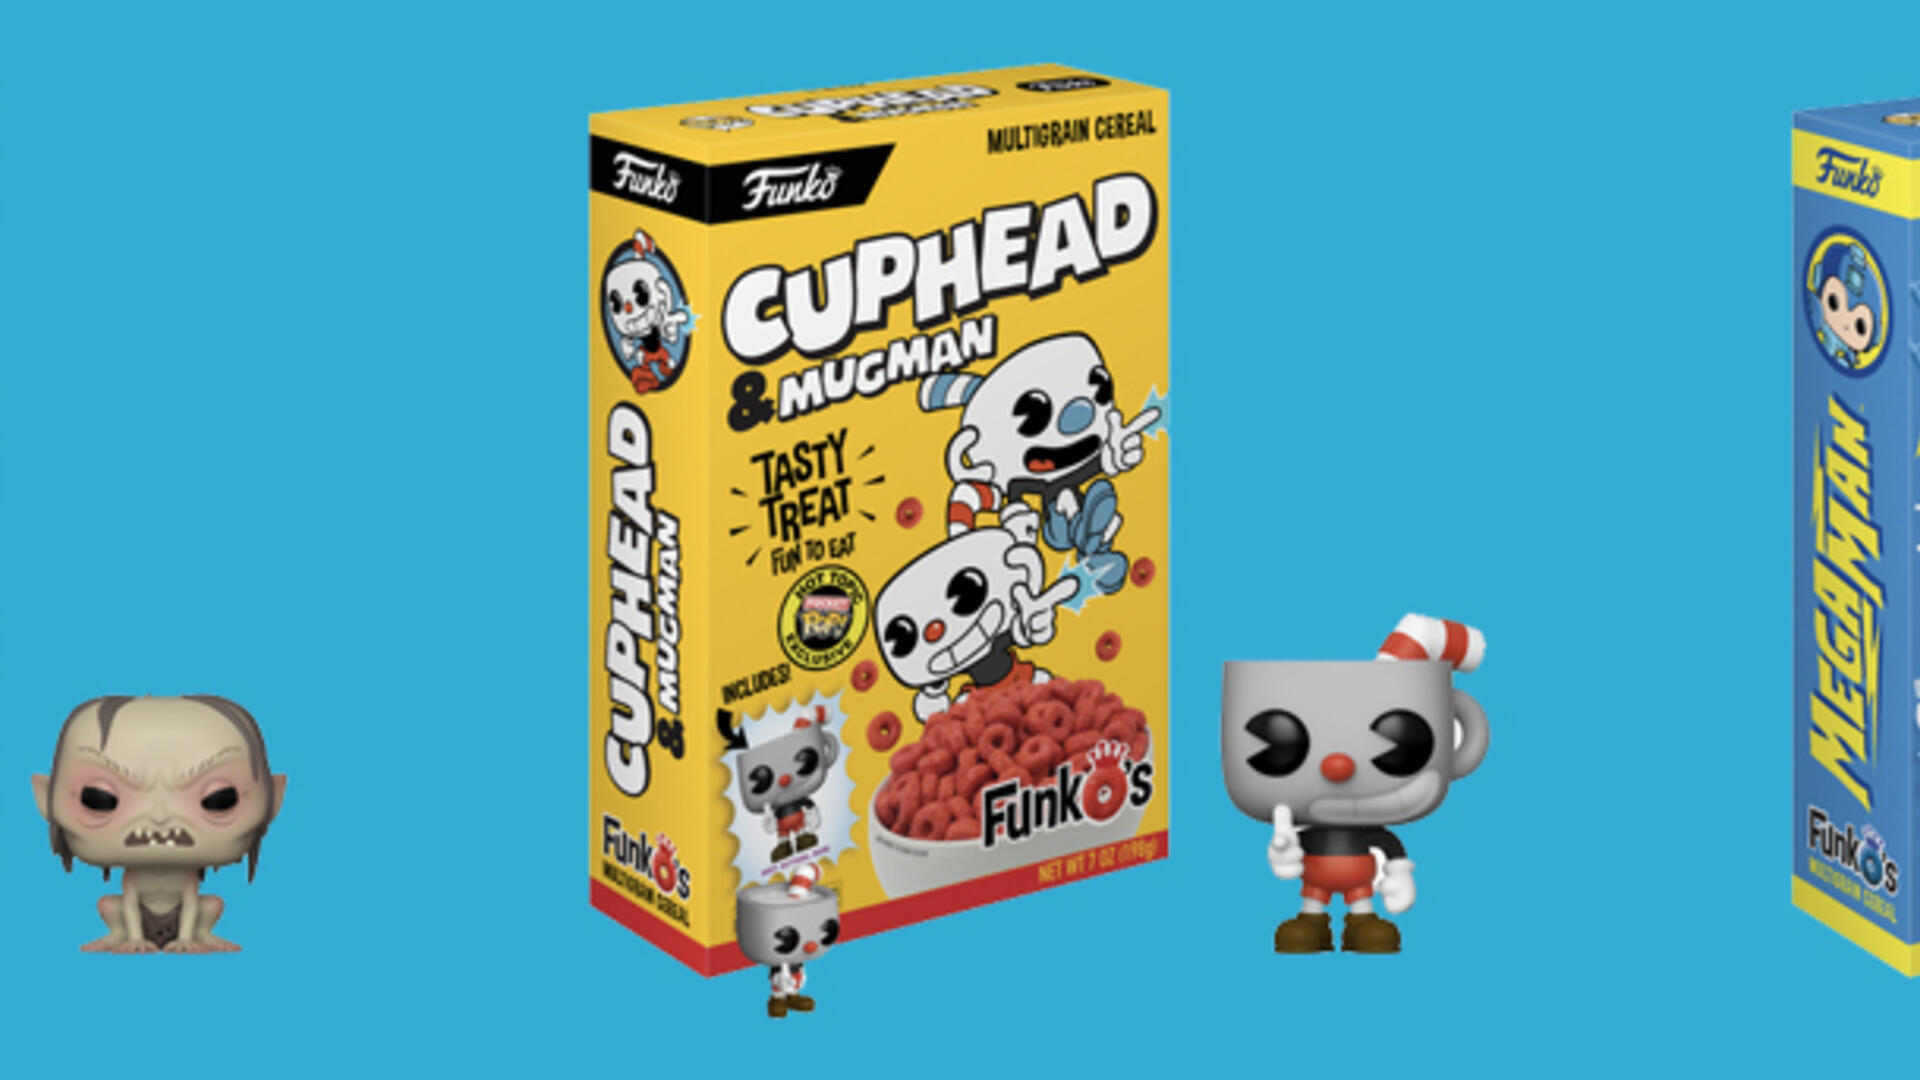 Mega Man and Cuphead Are Getting Their Own Cereals Courtesy of Funko Pop